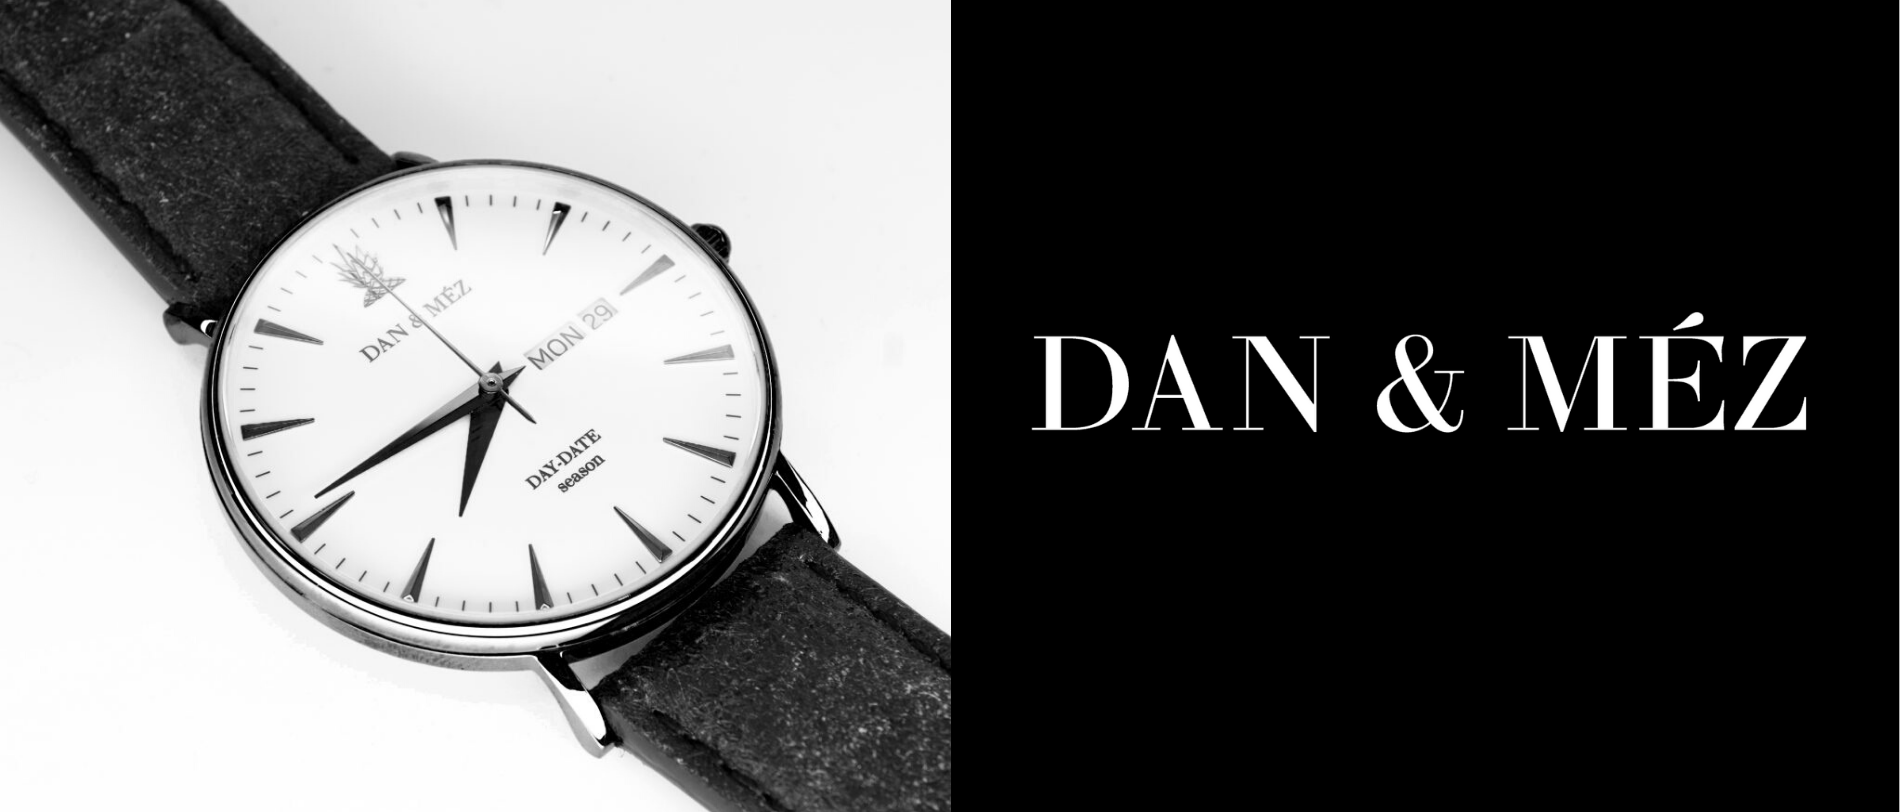 Dan and Mez watches